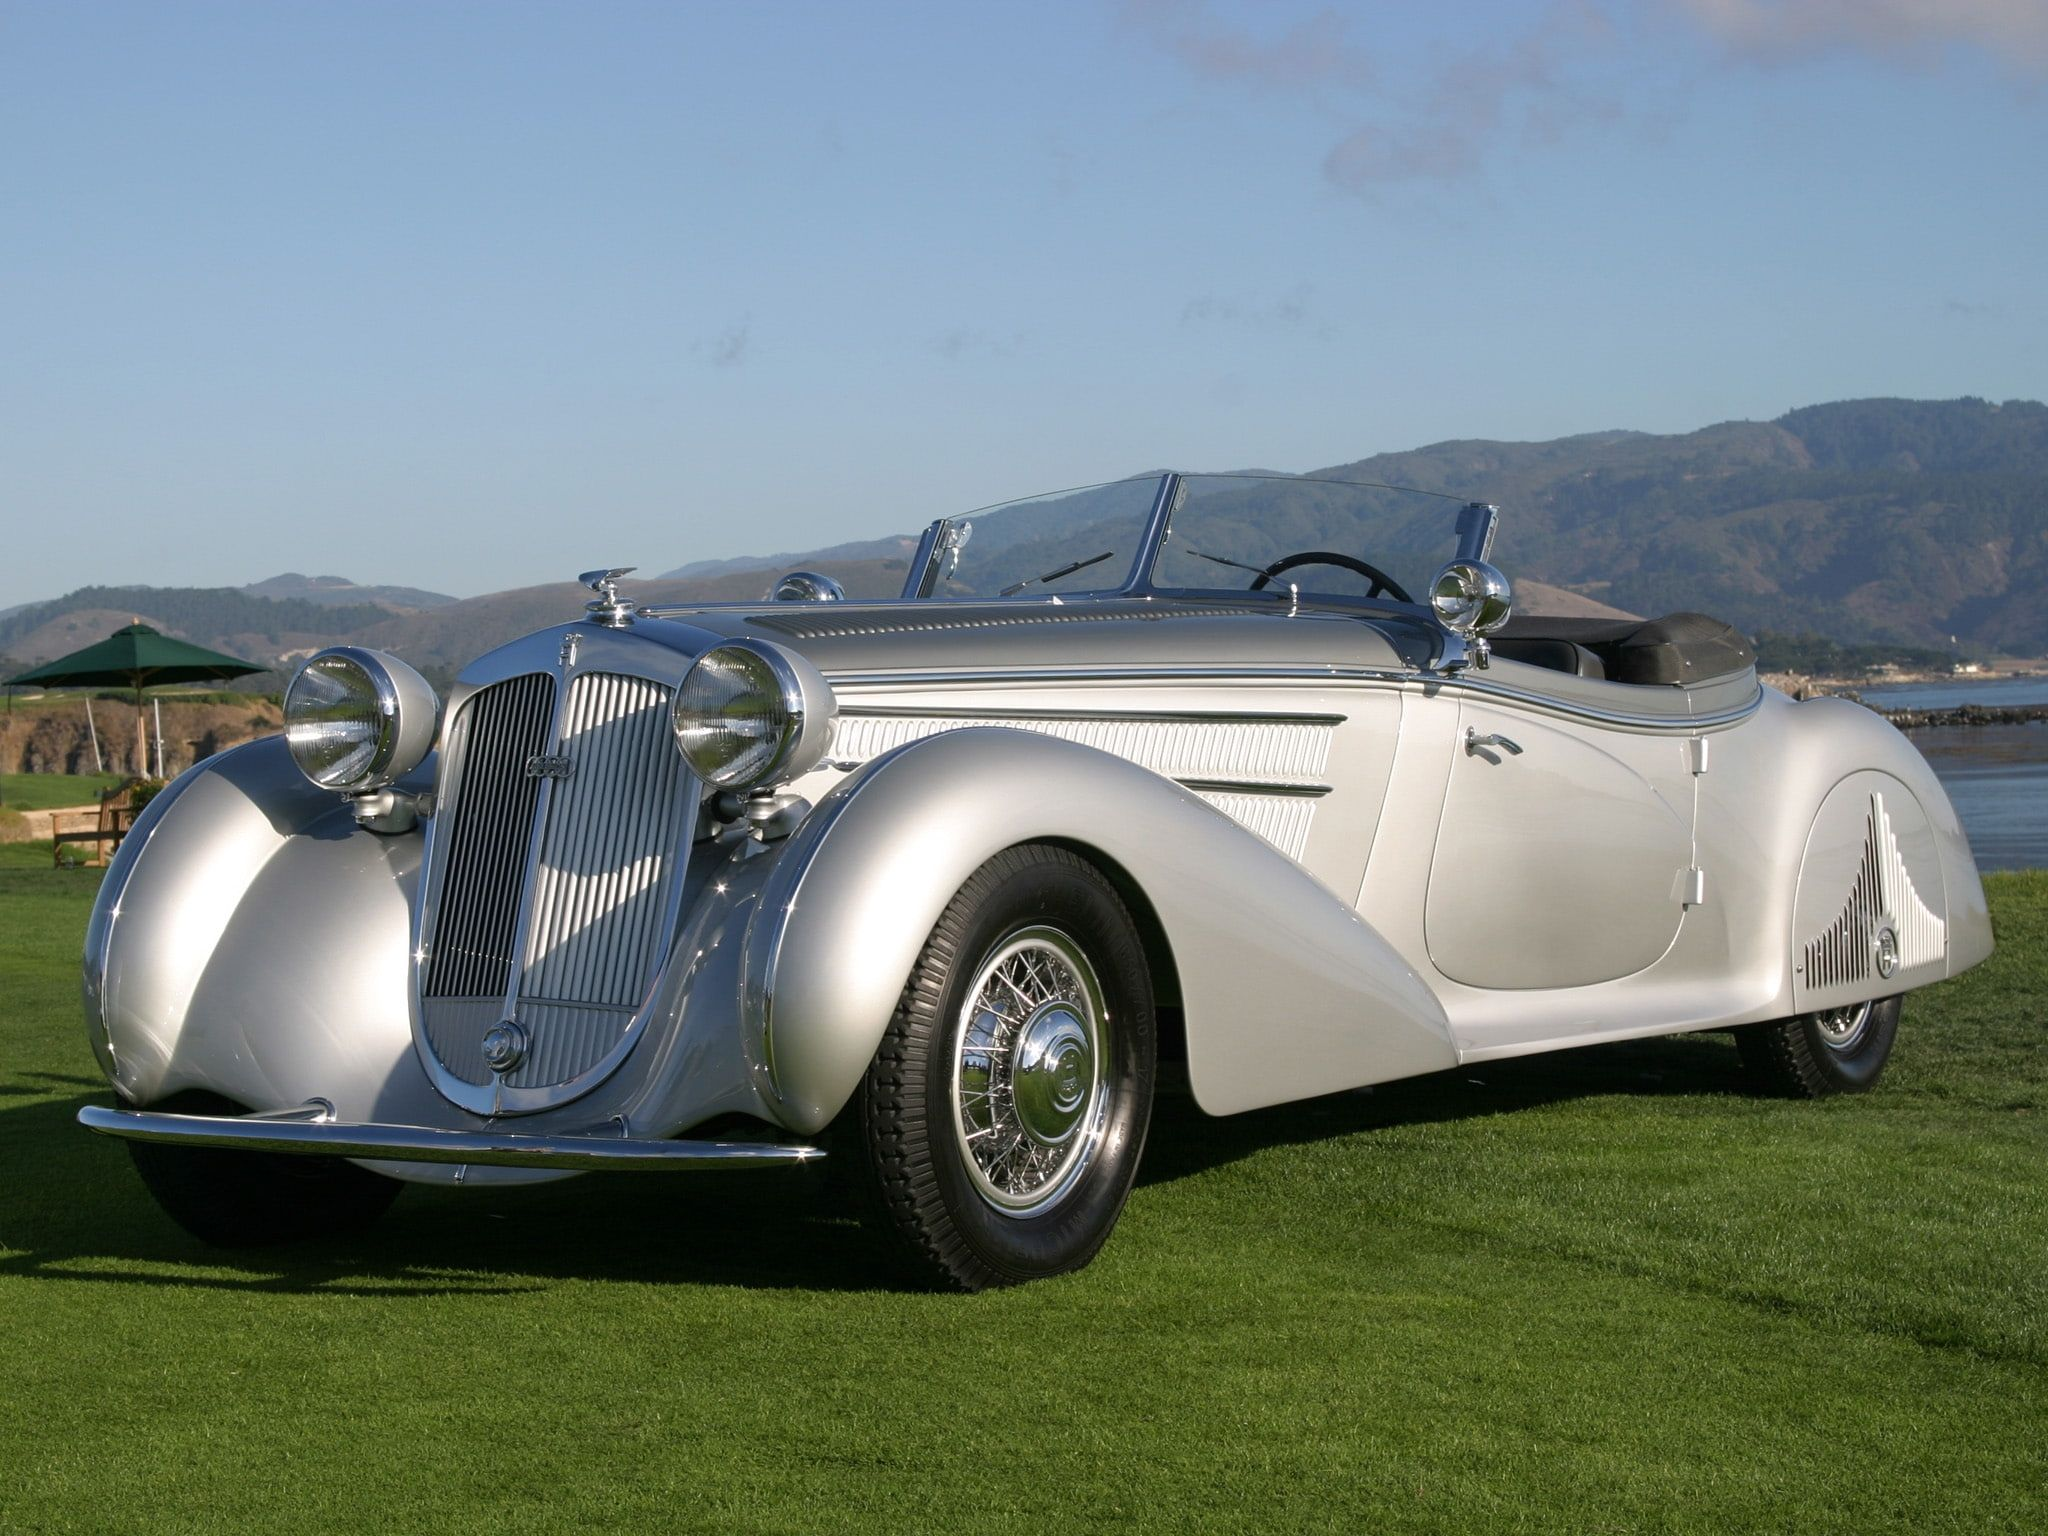 horch 853 #retro #luxury #cars #silver #grass #Vehicle